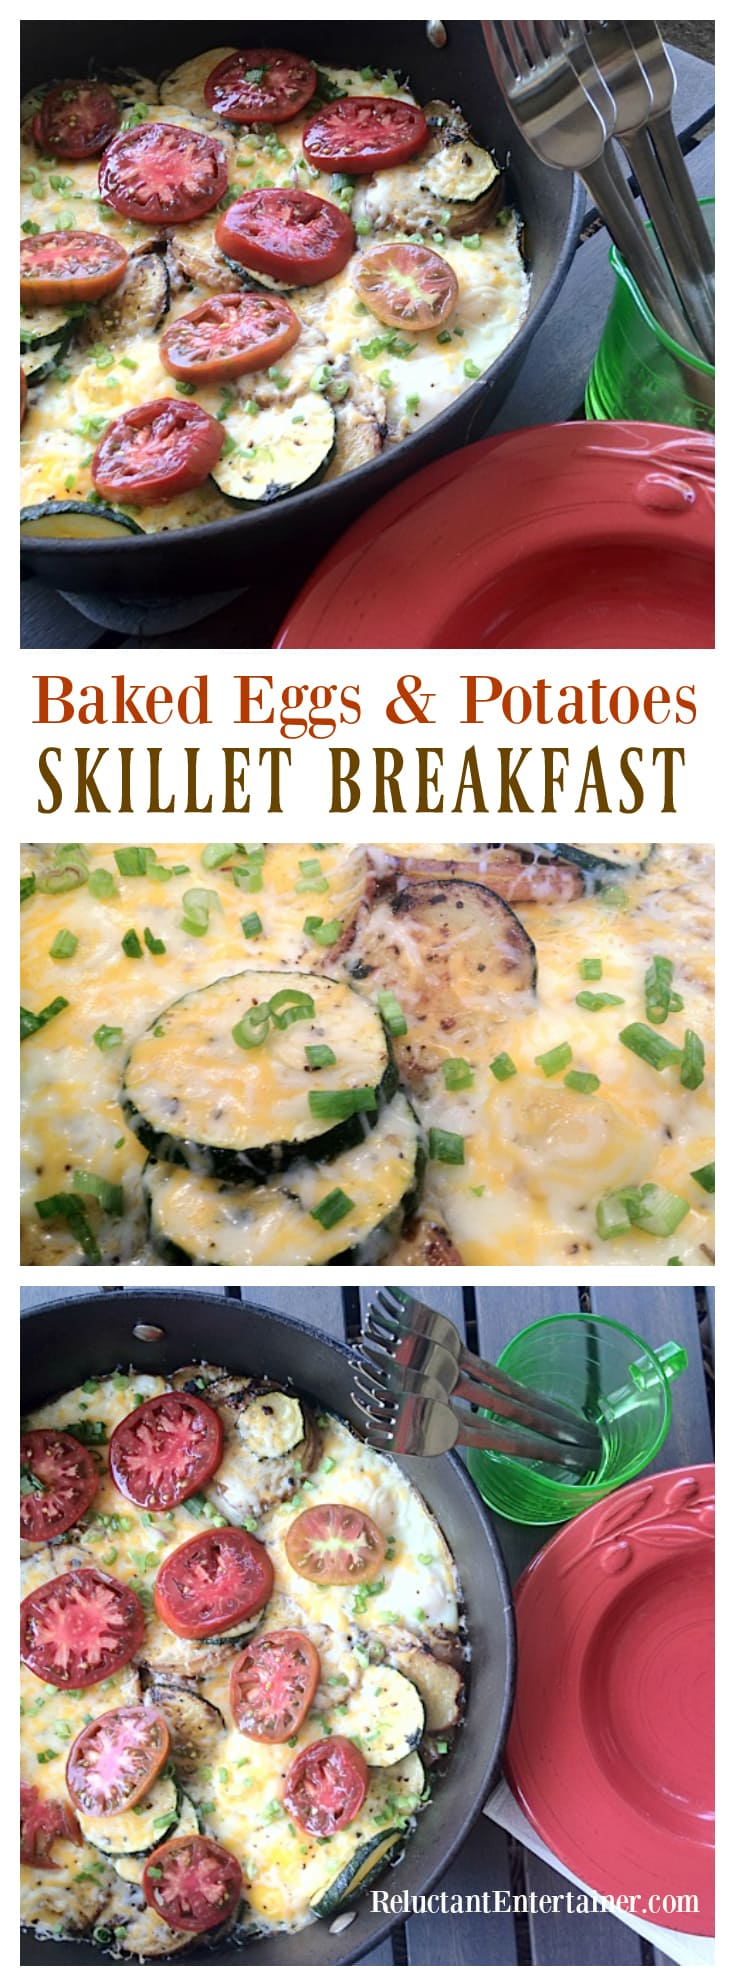 Baked Eggs and Potatoes Skillet Breakfast